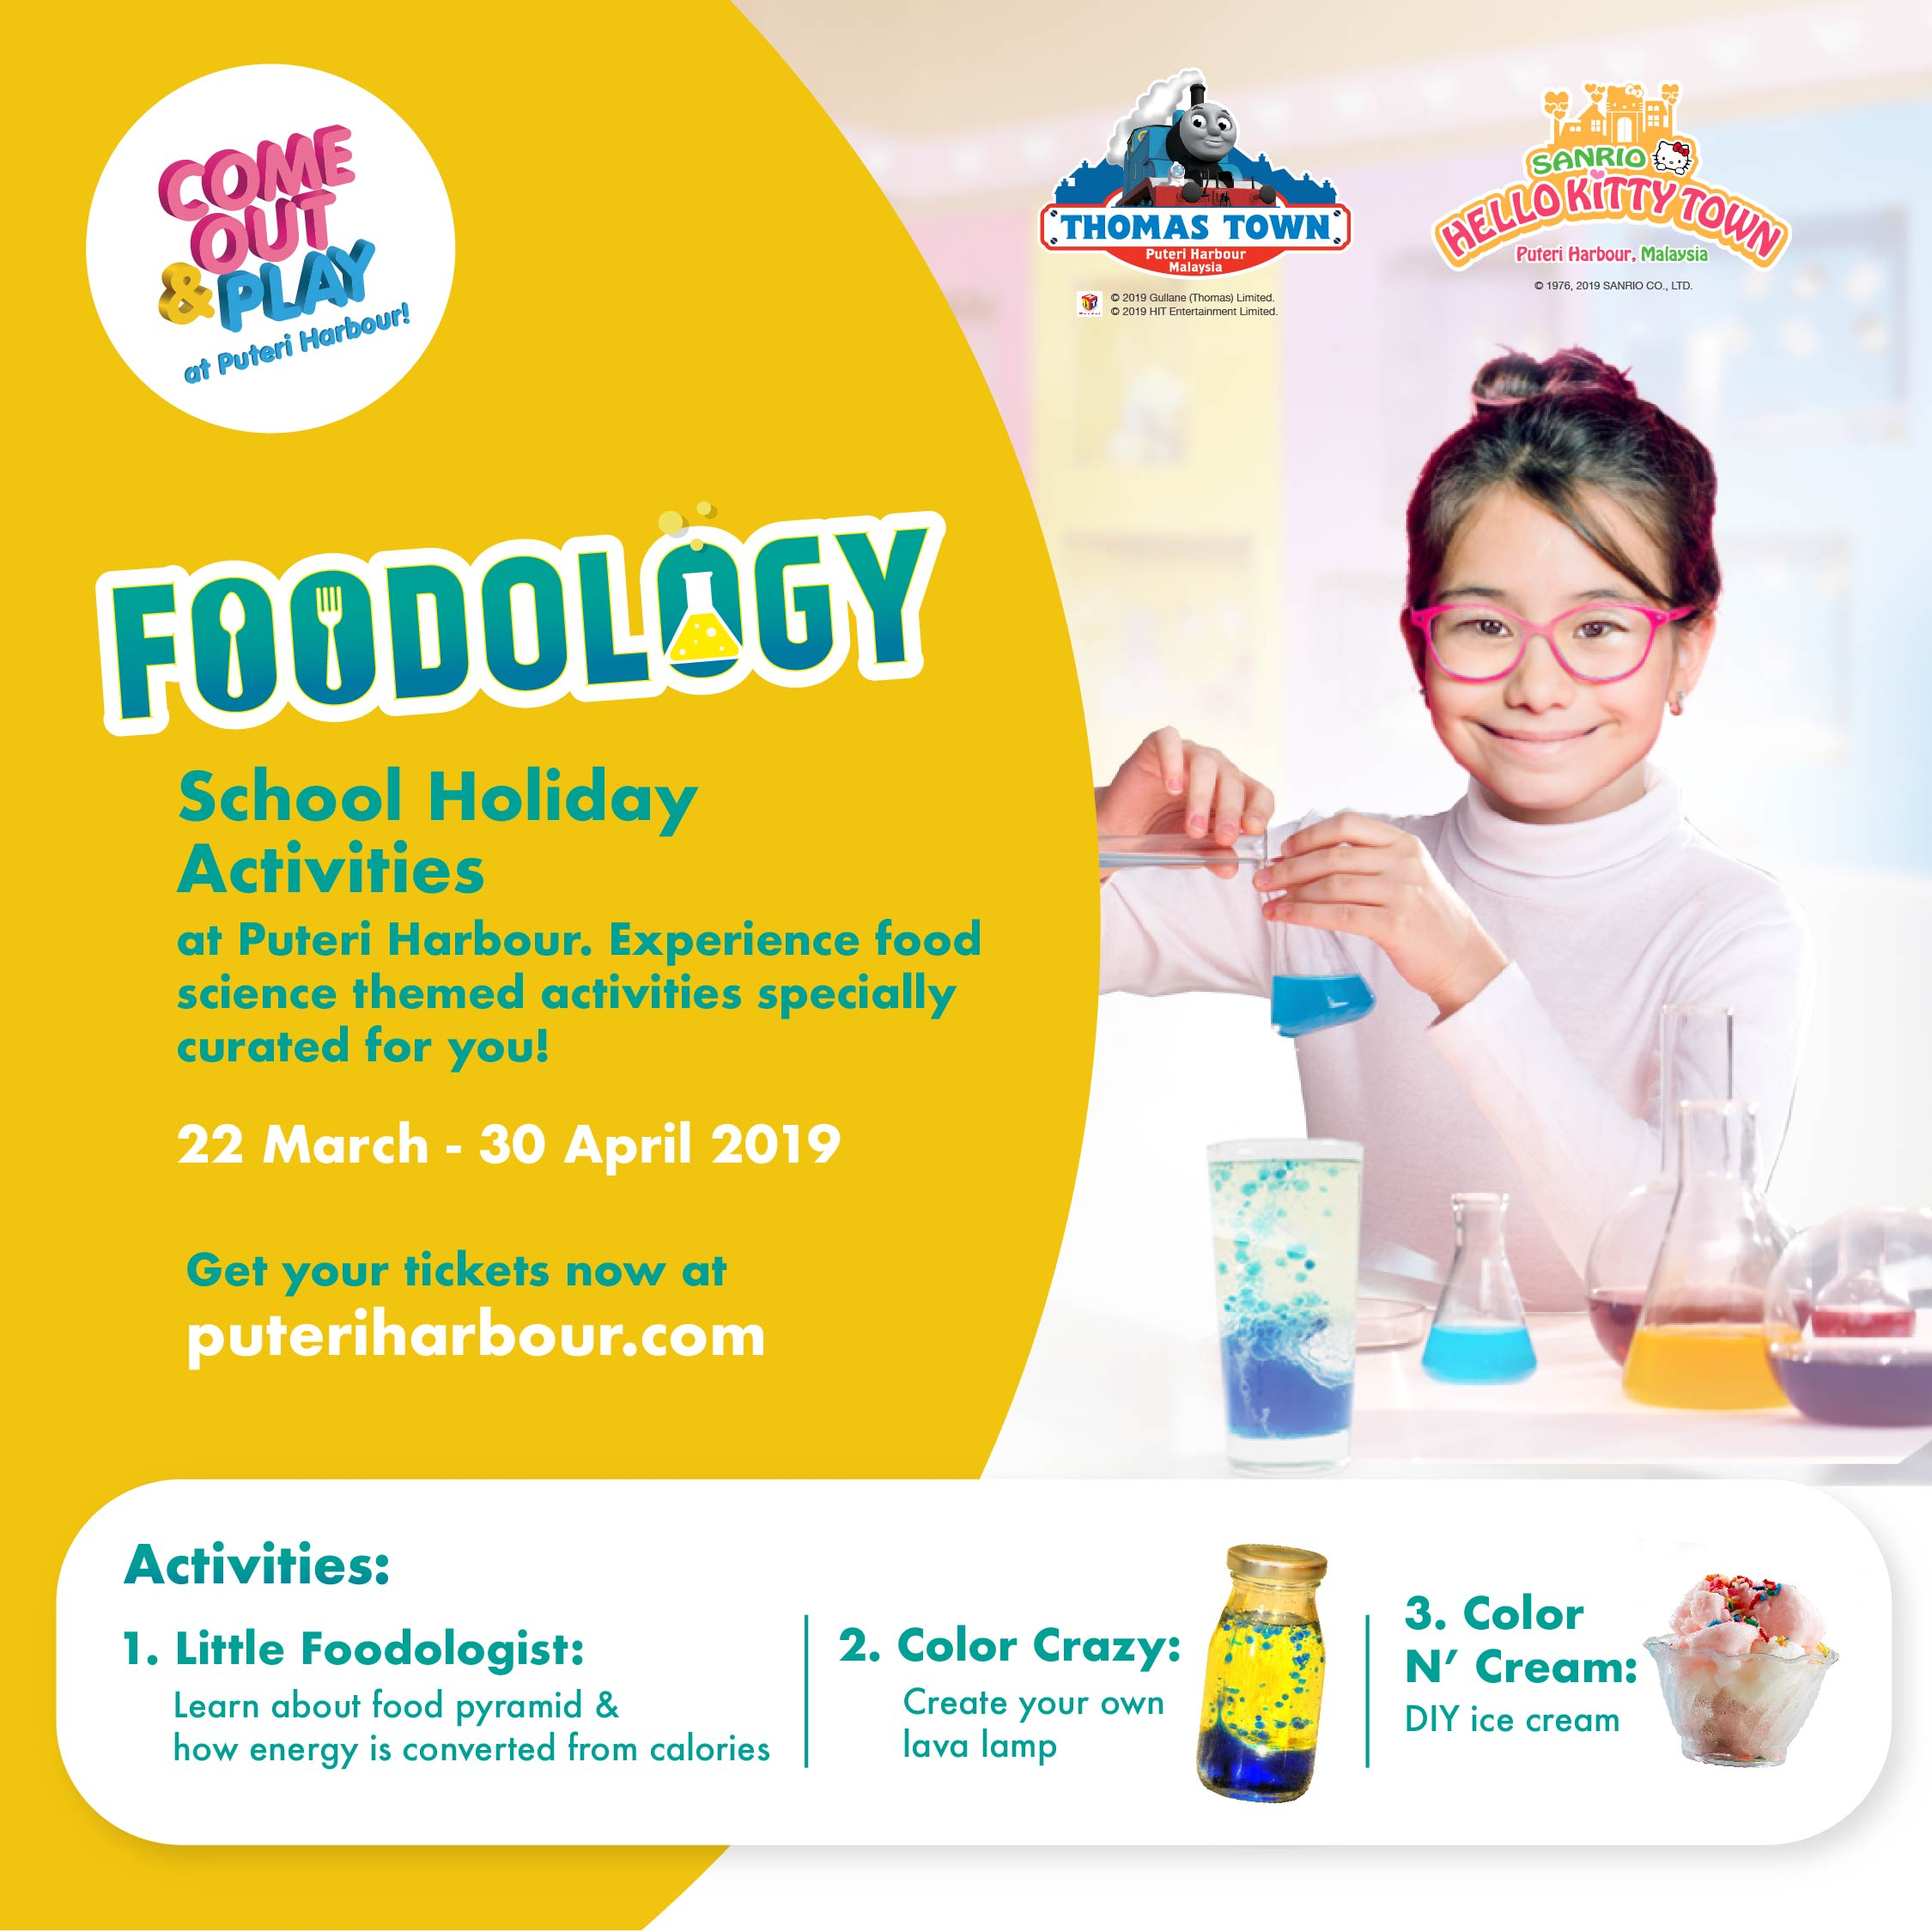 The 'Come Out & Play: Foodology' Programme at  THOMAS TOWN and SANRIO HELLO KITTY TOWN, Puteri Harbour, Johor